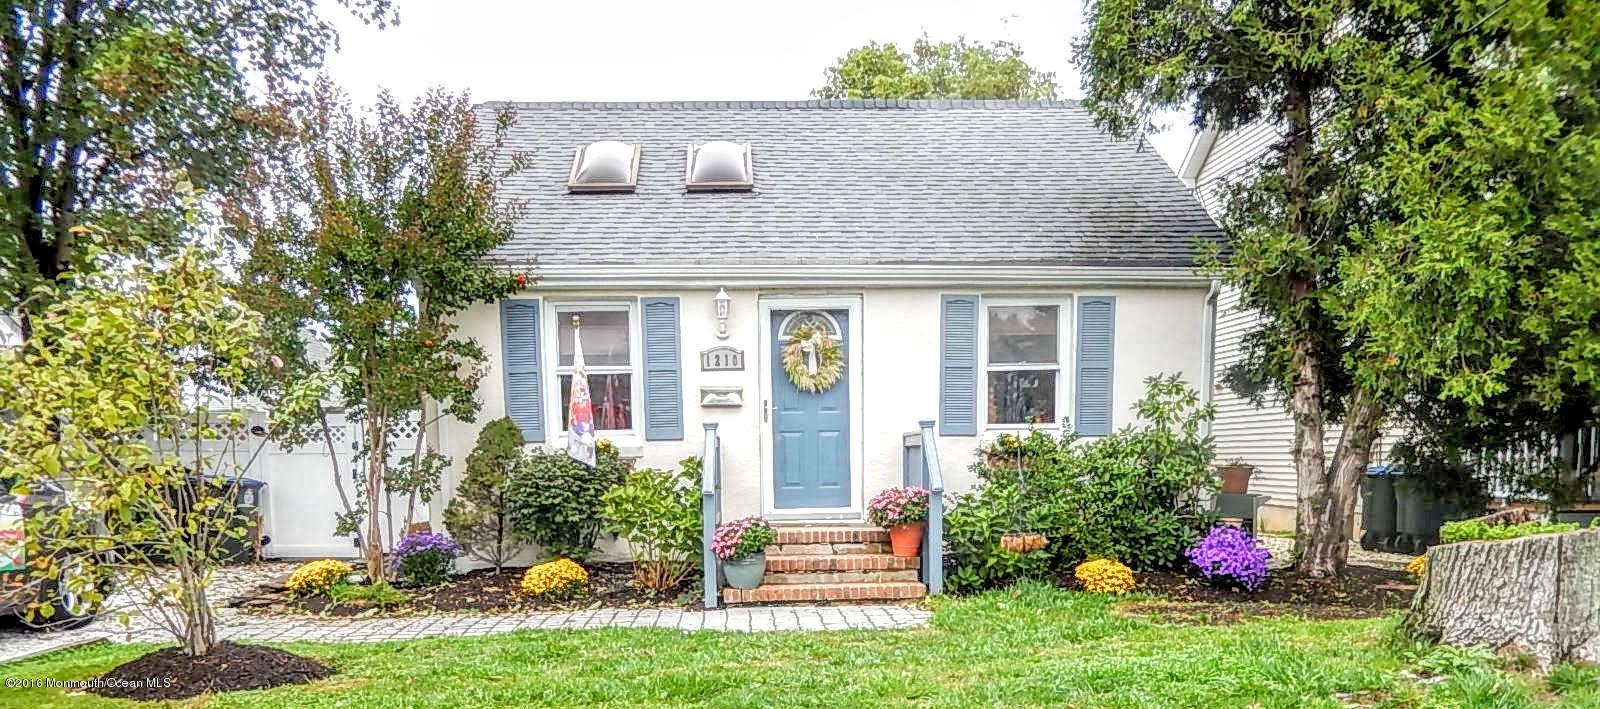 Photo of home for sale at 1210 New York Avenue Avenue, Manasquan NJ